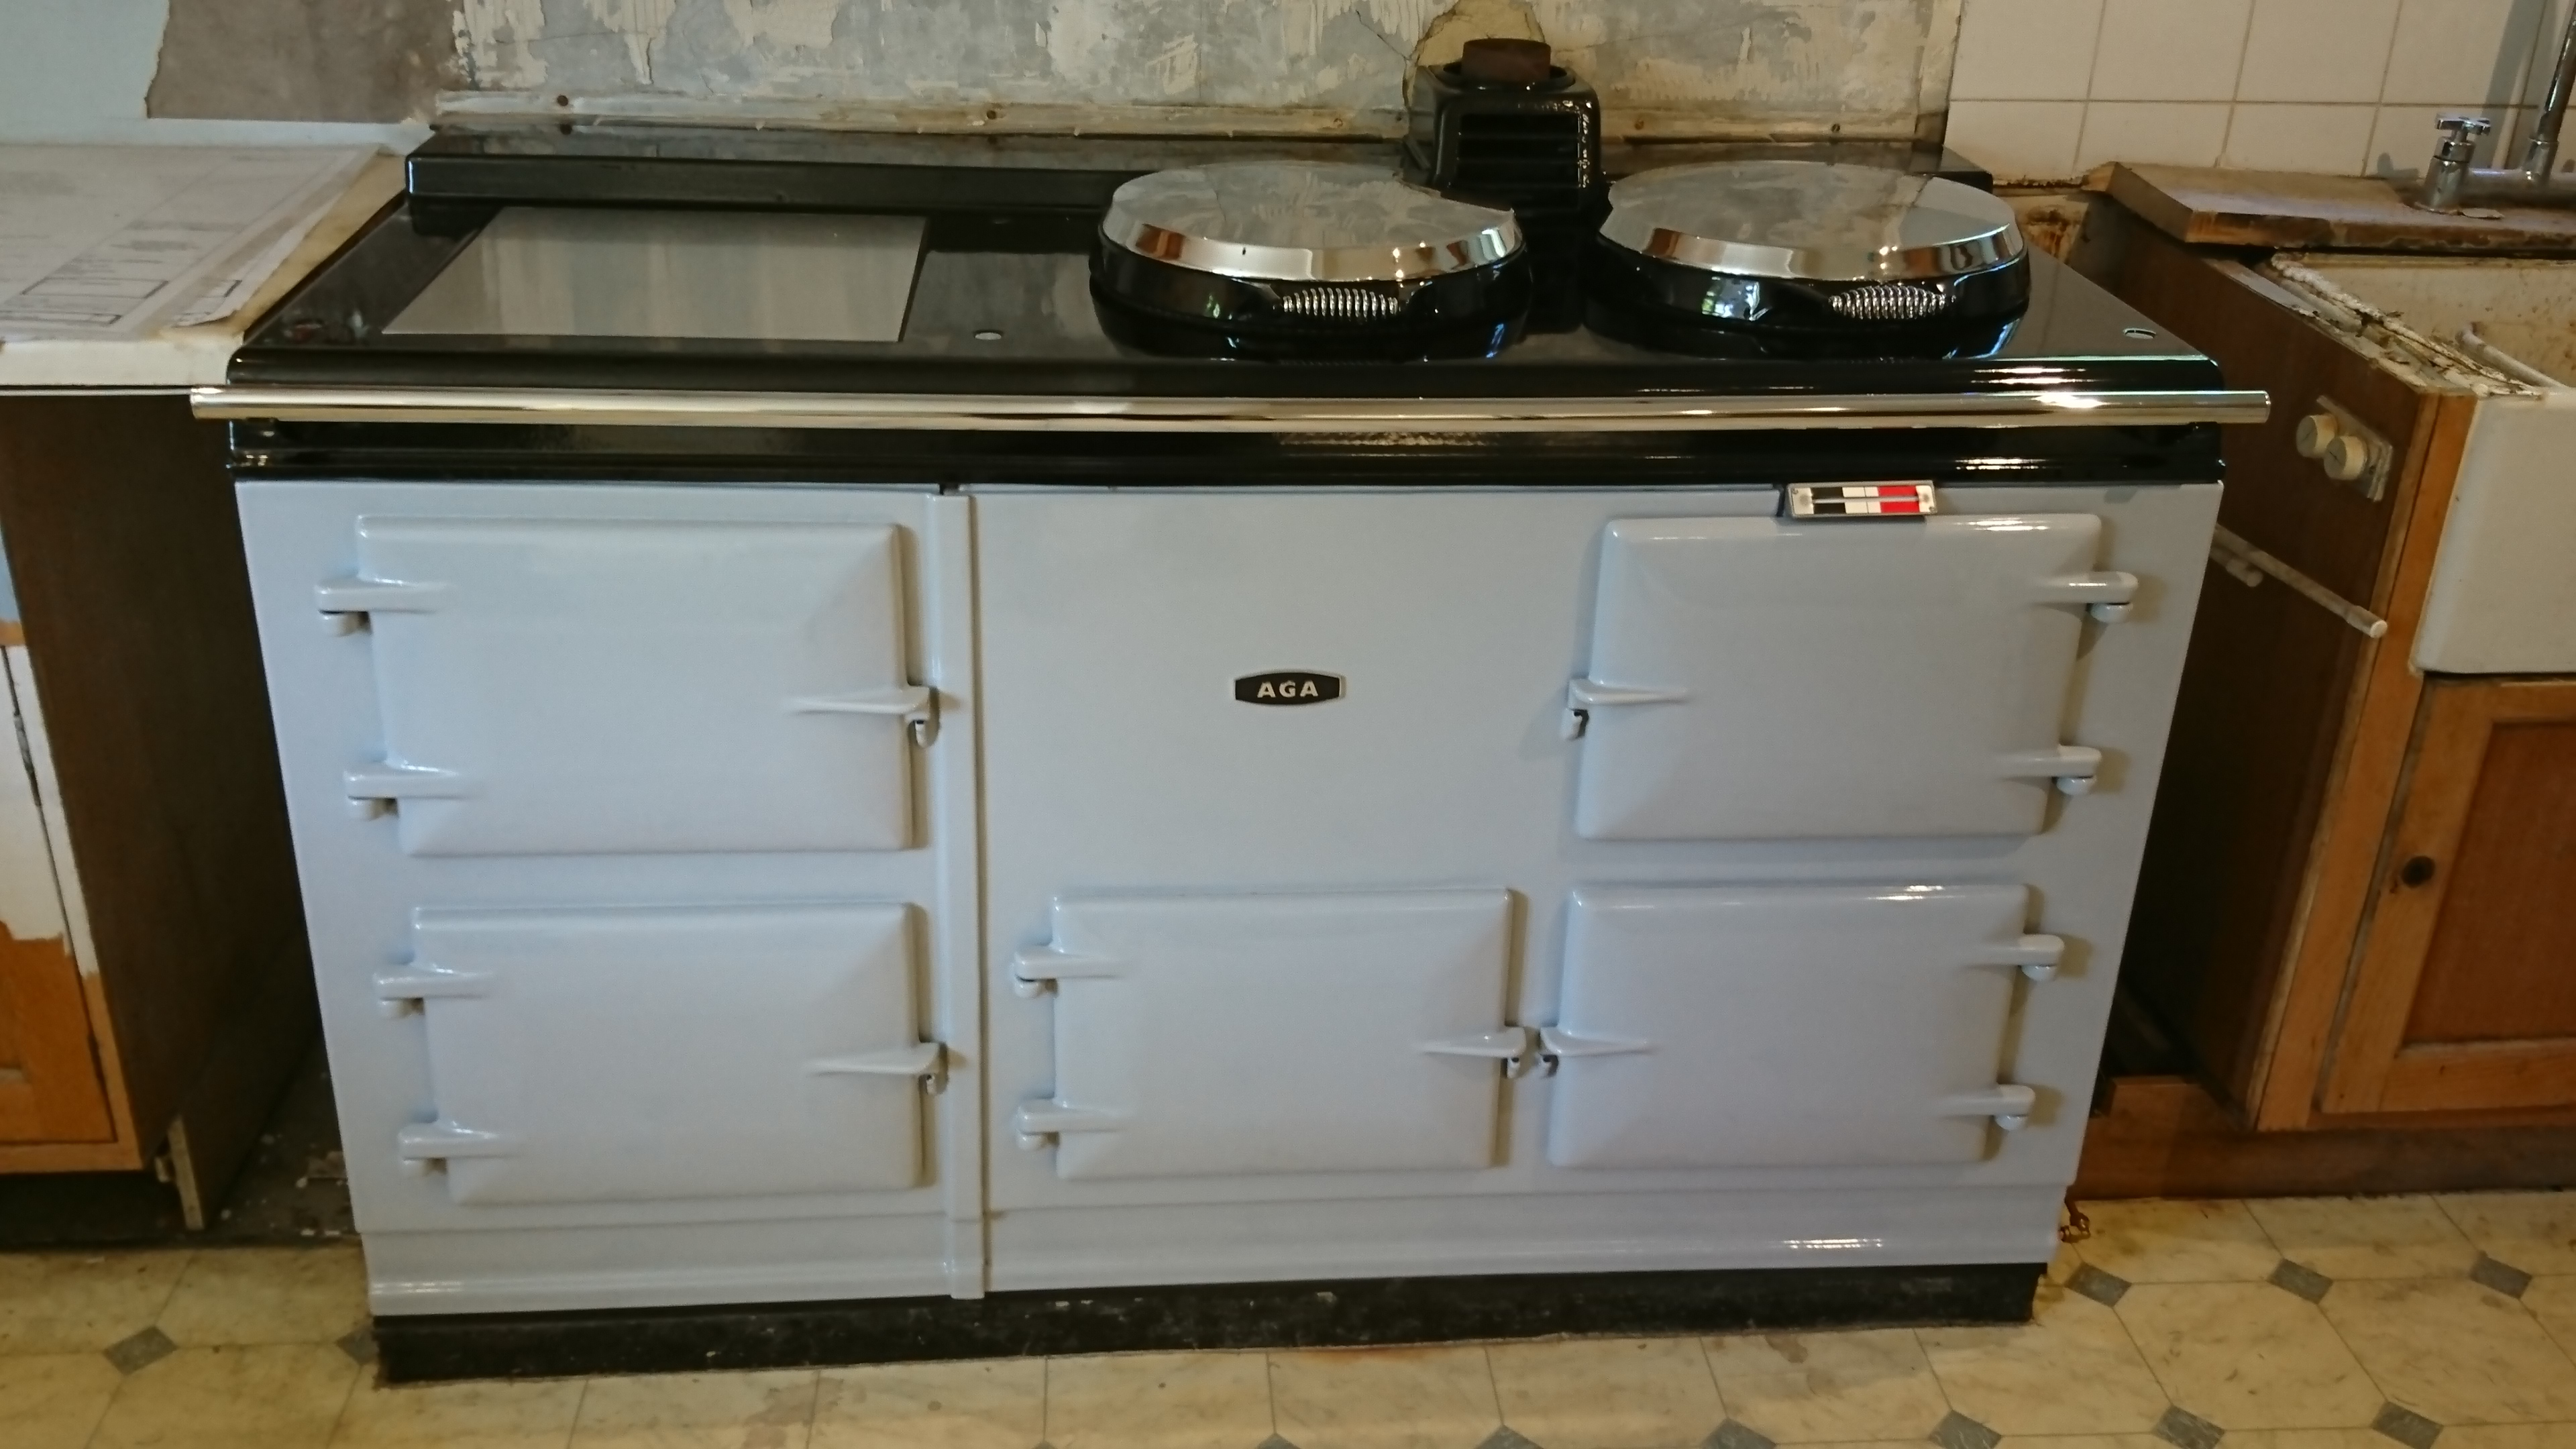 Customers own 4 Oven Aga.